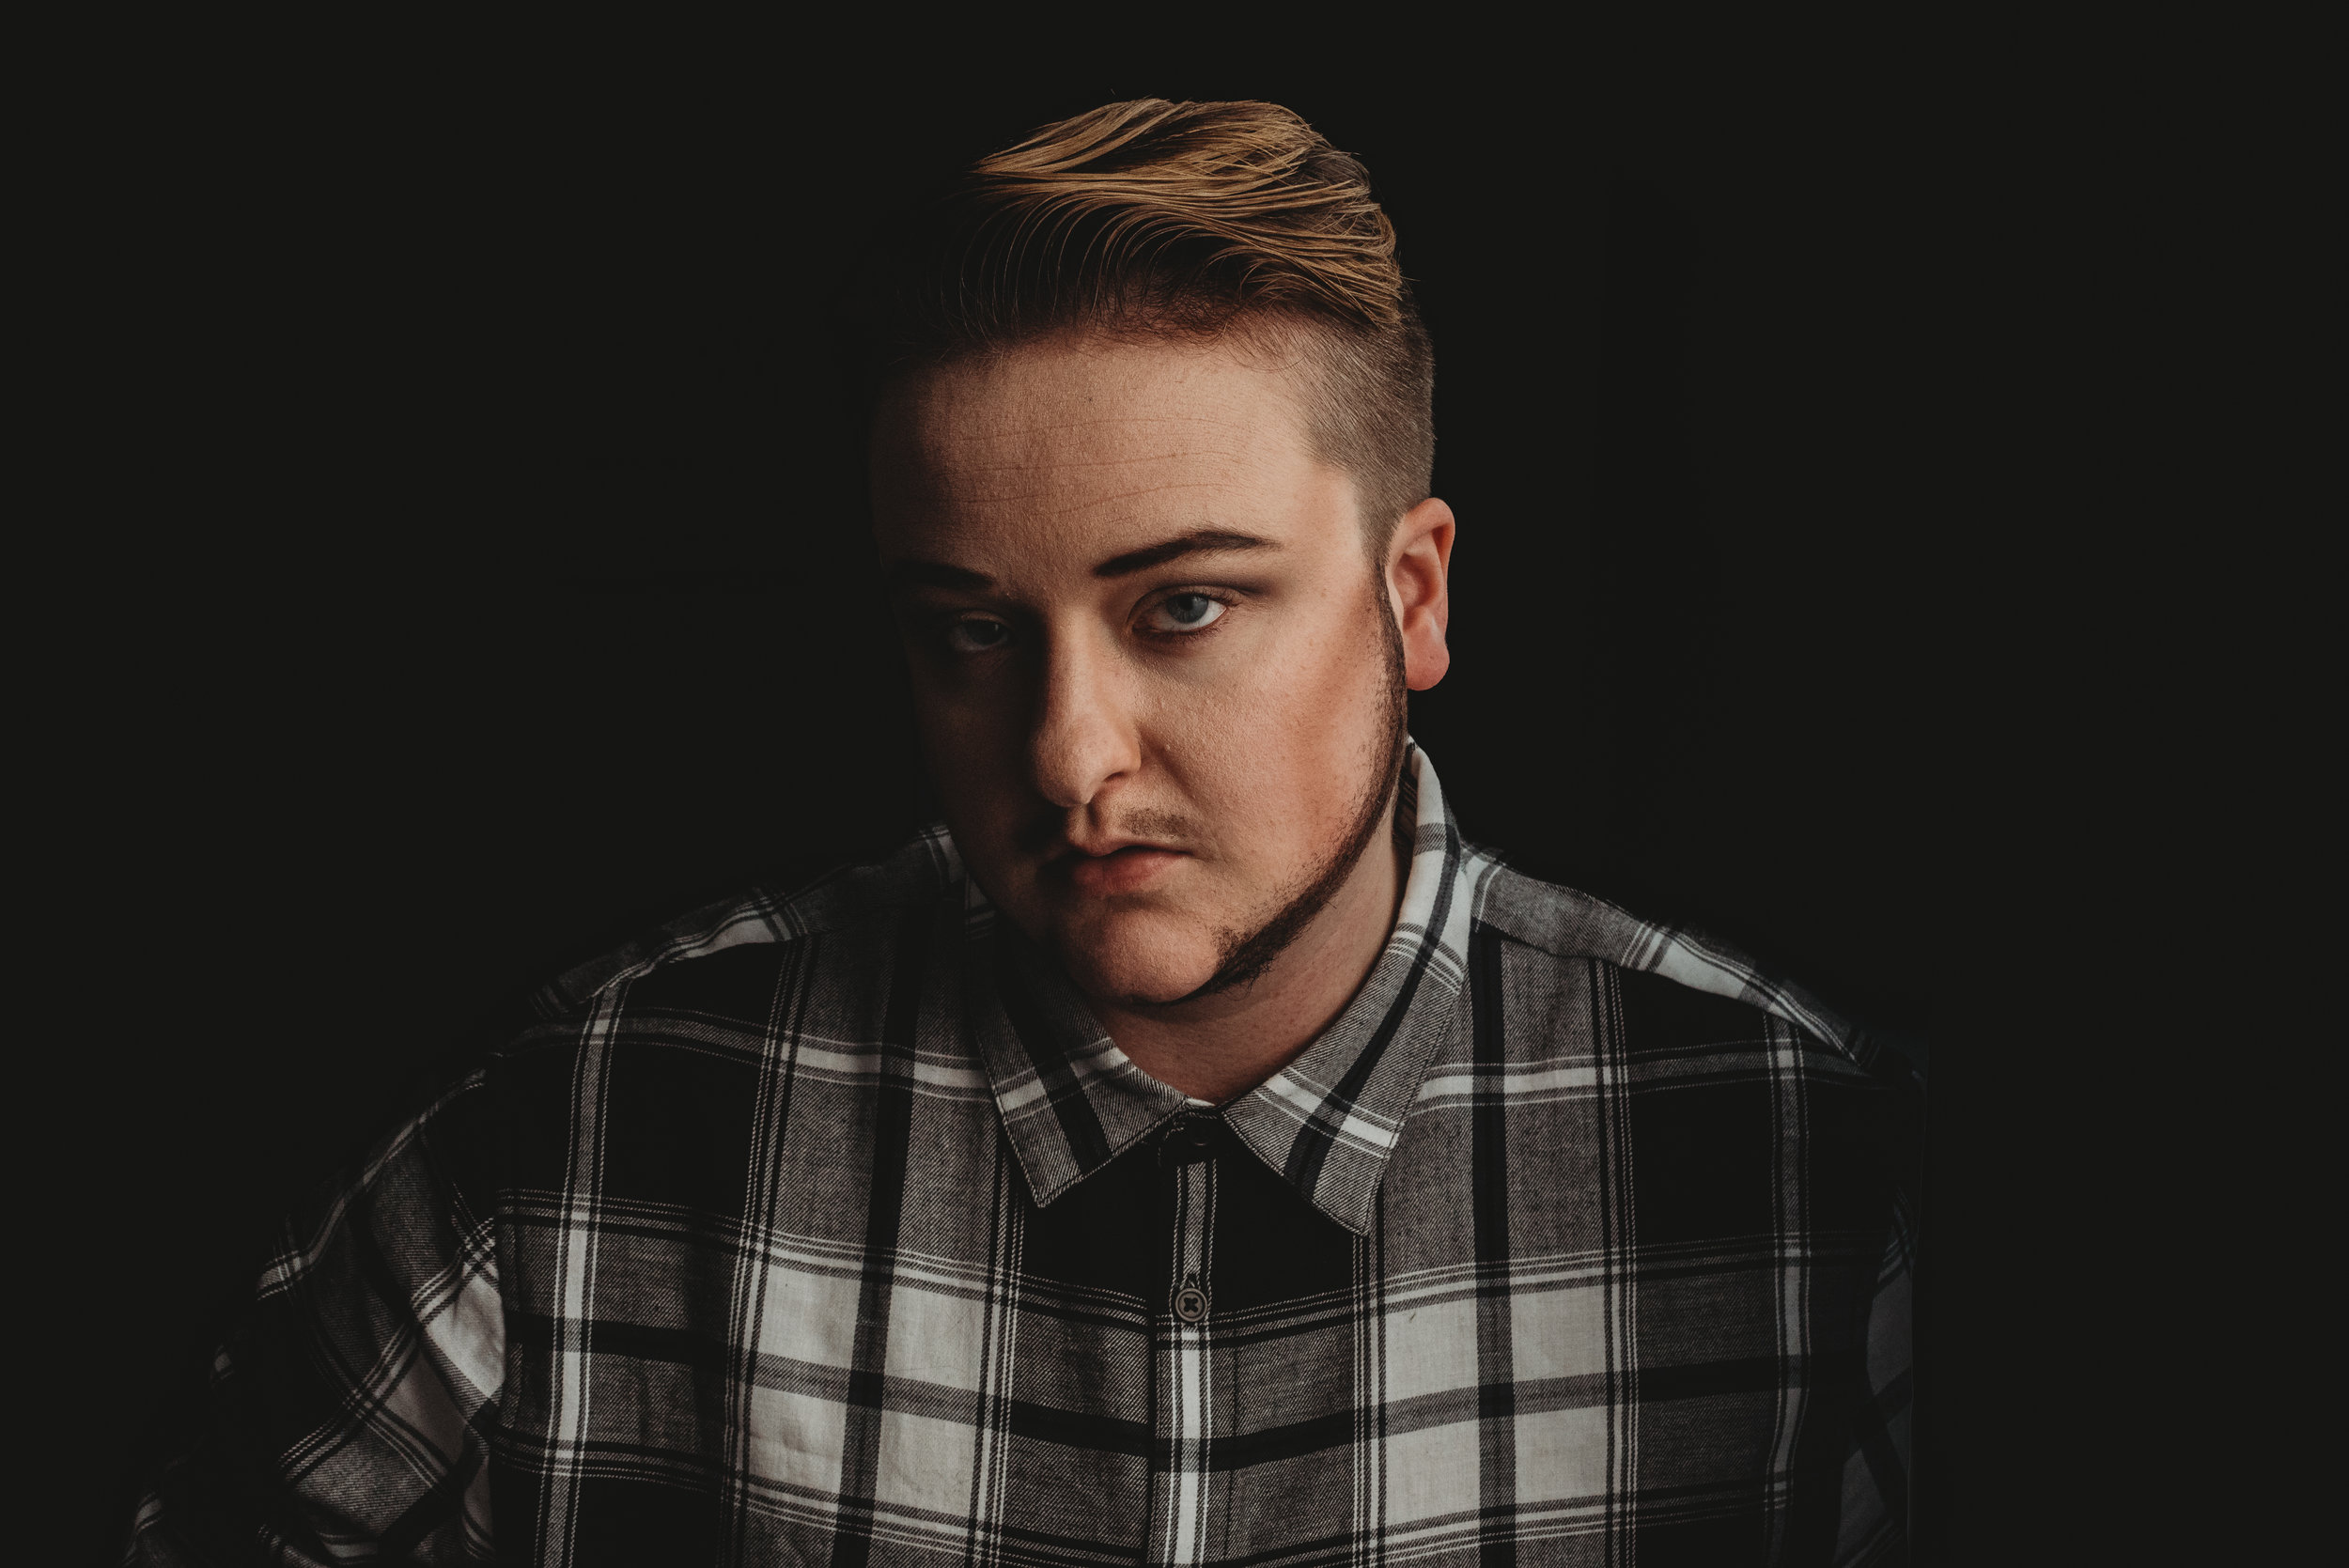 When I'm feeling fancy, I like to do makeup, another form of art, on myself. This is me making myself look like a man with a fake beard and masculine contouring. I did this for a birthday celebration for my 25th when I went out with friends.